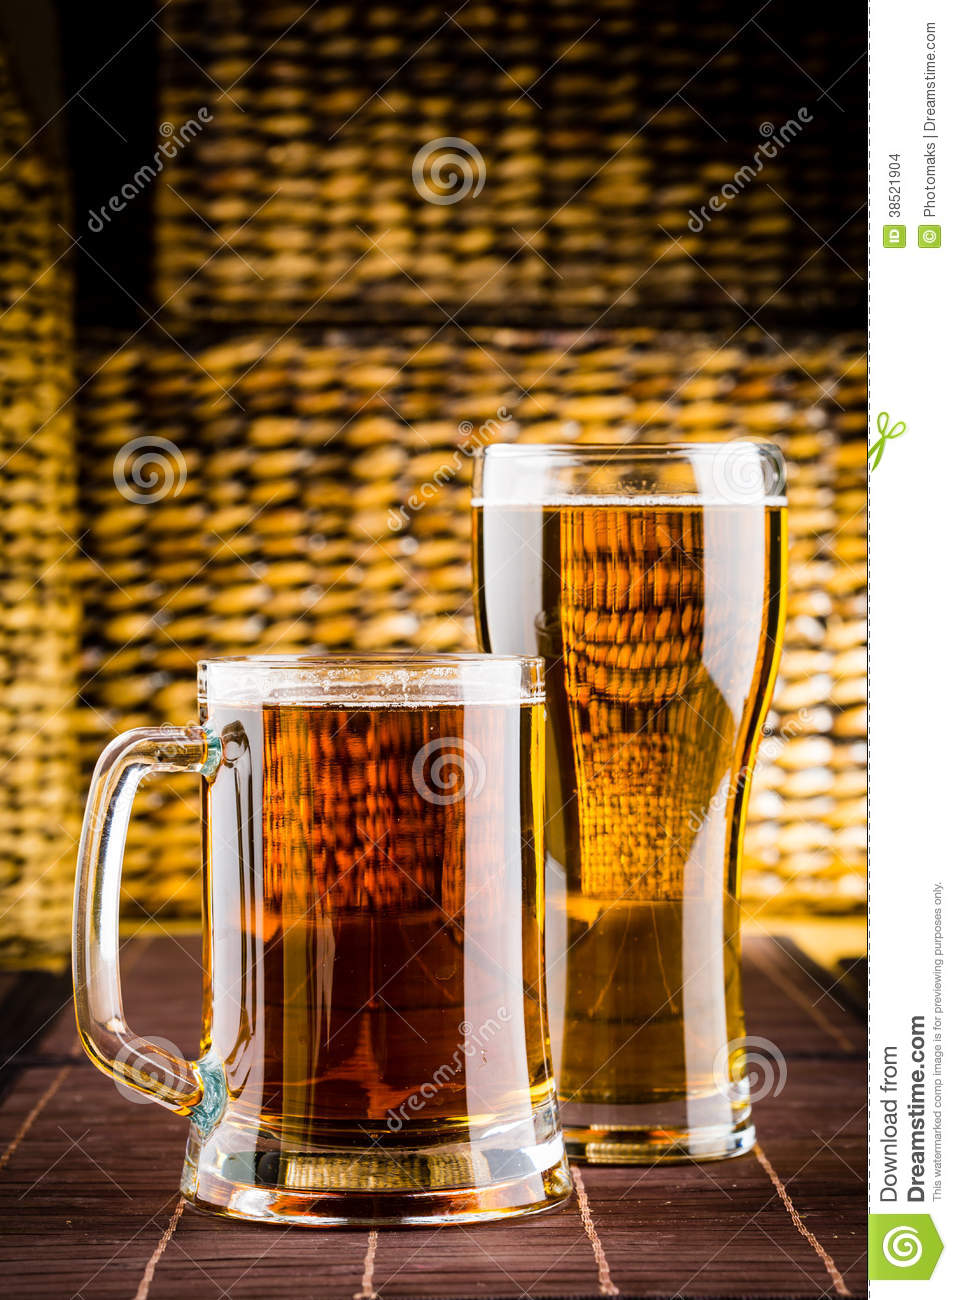 glass beer on wood - photo #49